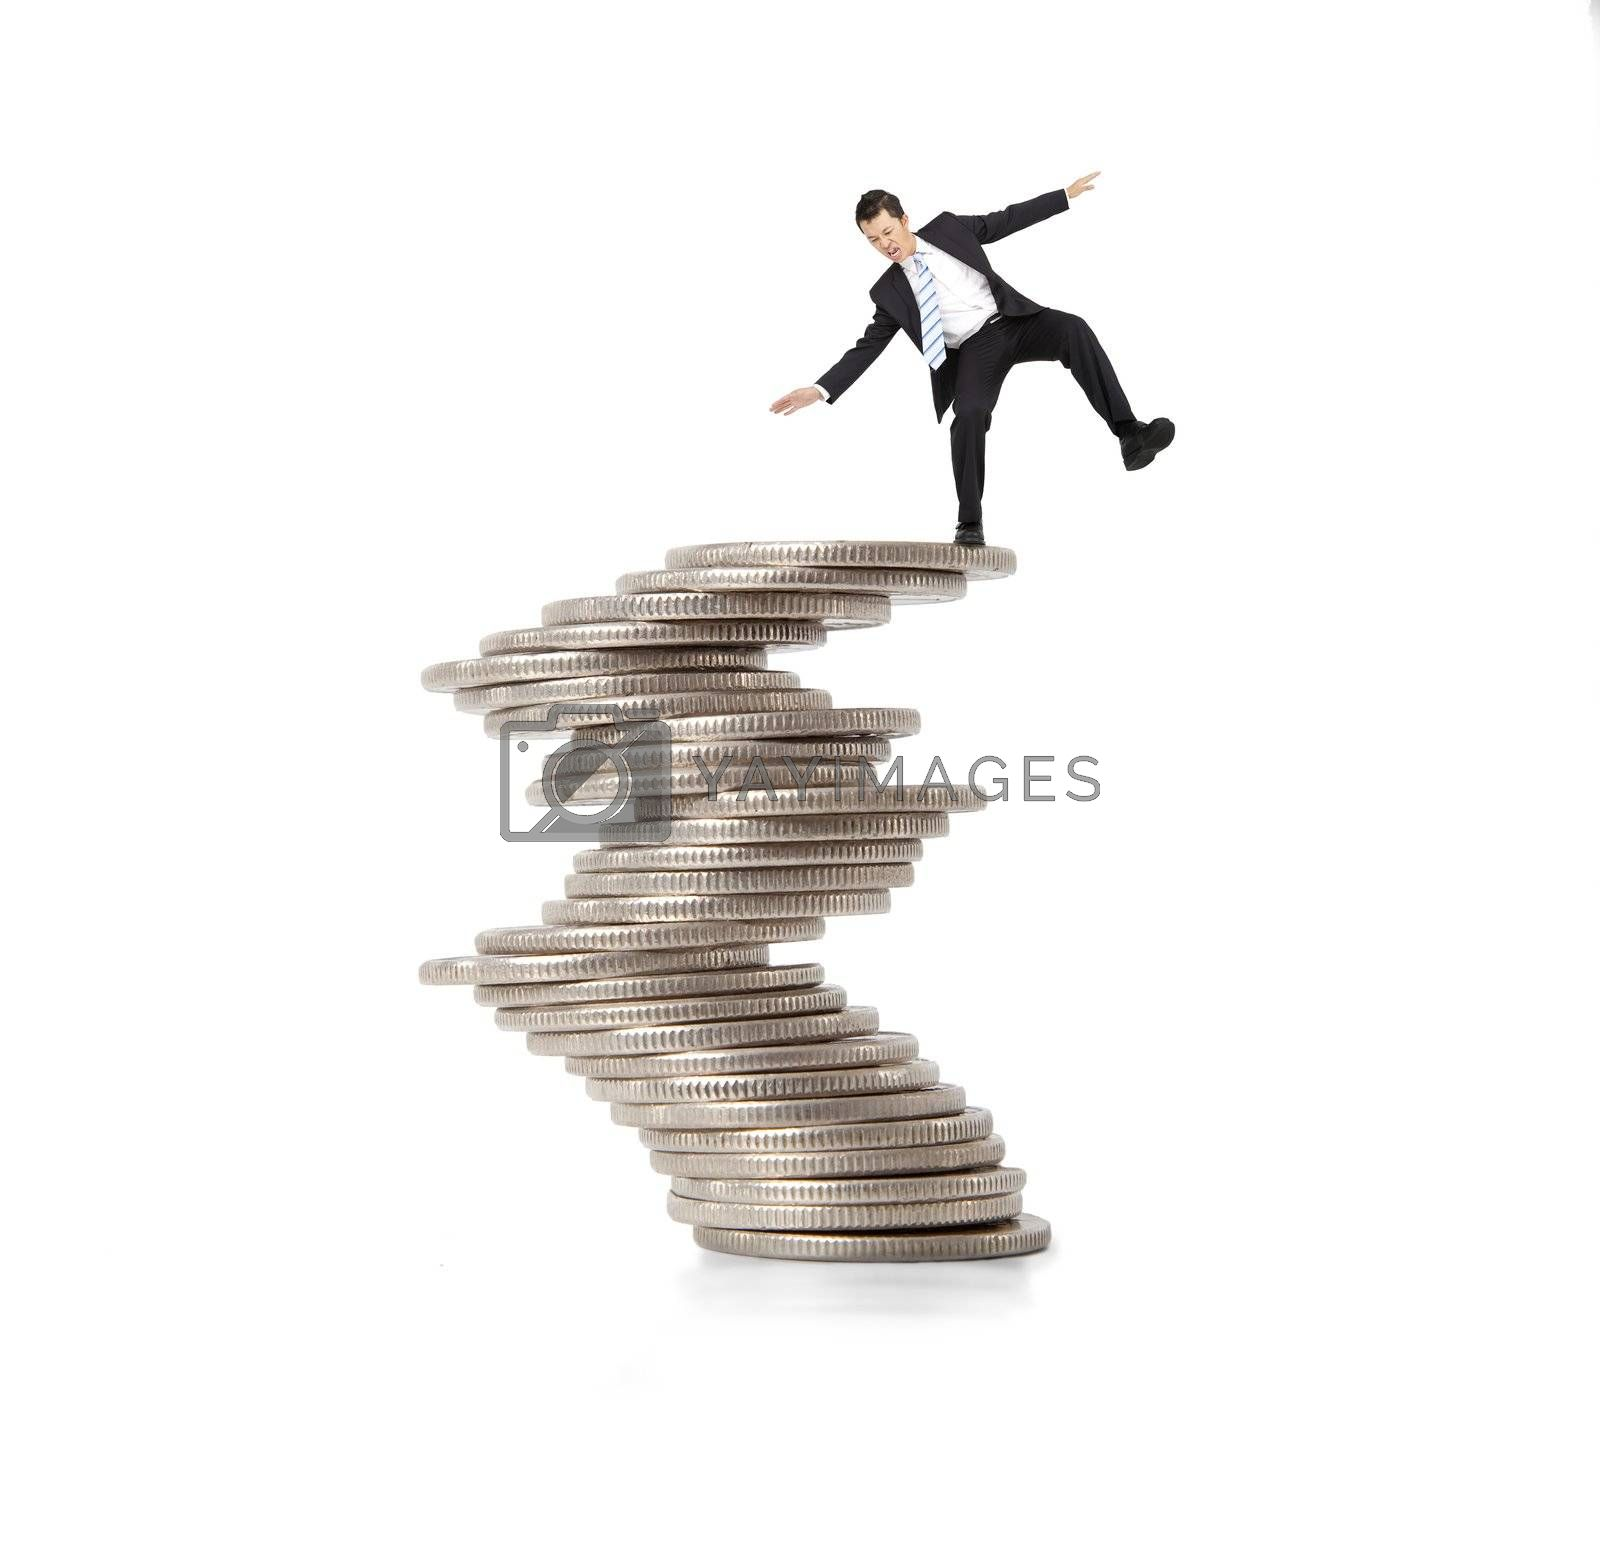 financial and crisis concept. businessman standing on the unstable coins